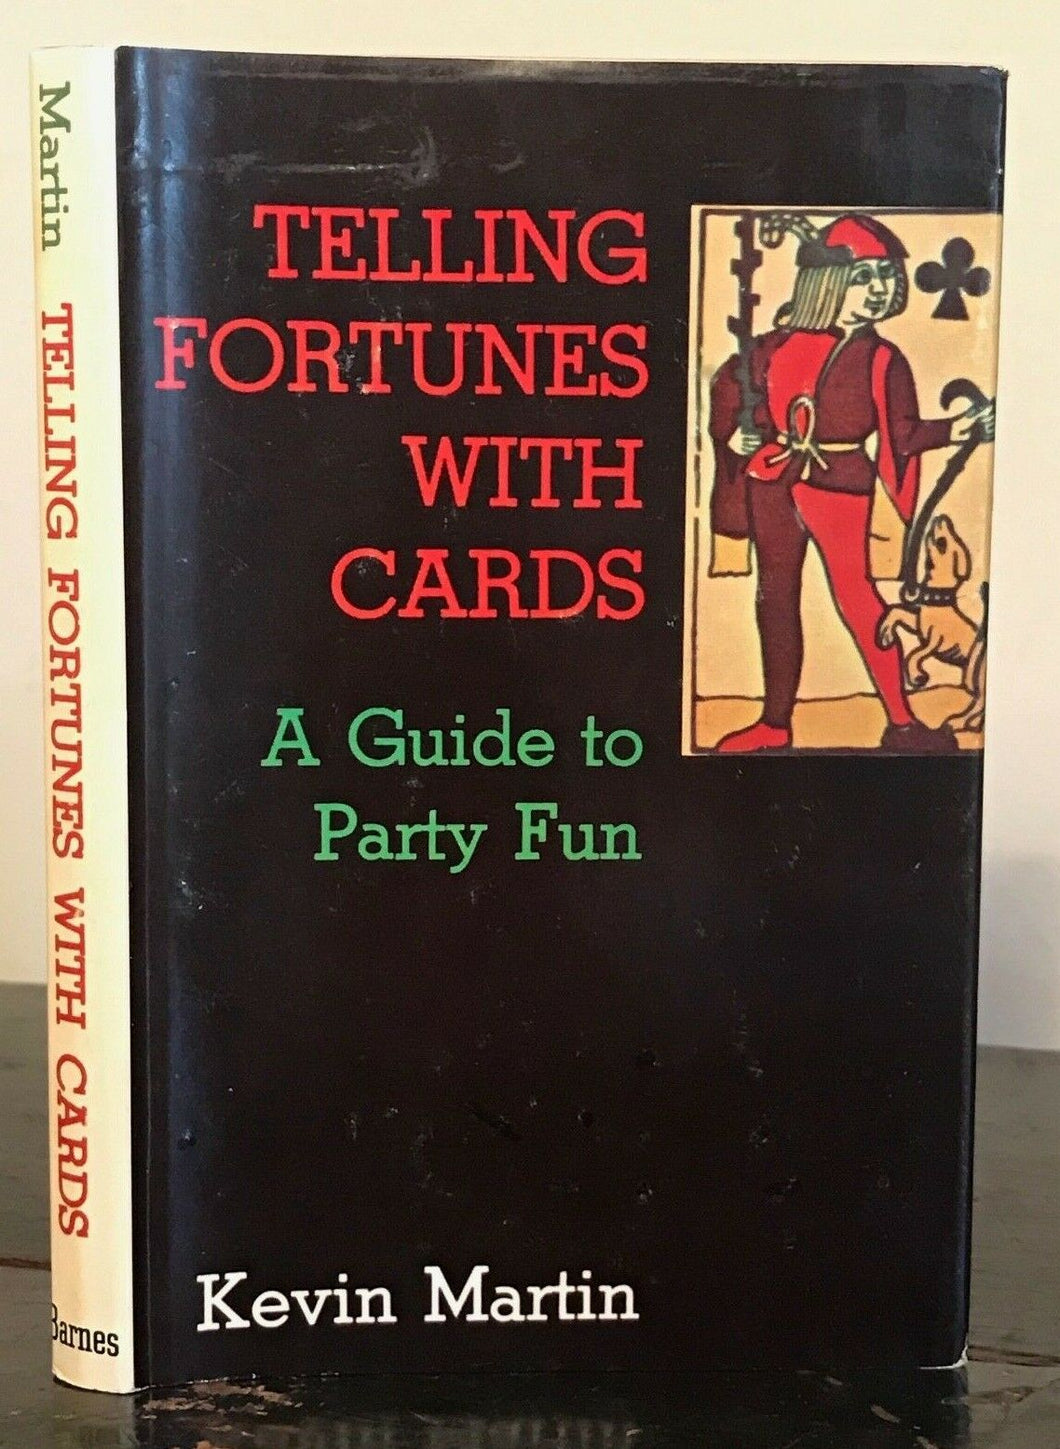 TELLING FORTUNES WITH CARDS - 1st Ed 1970 - ORACLES, DIVINATION, CARTOMANCY